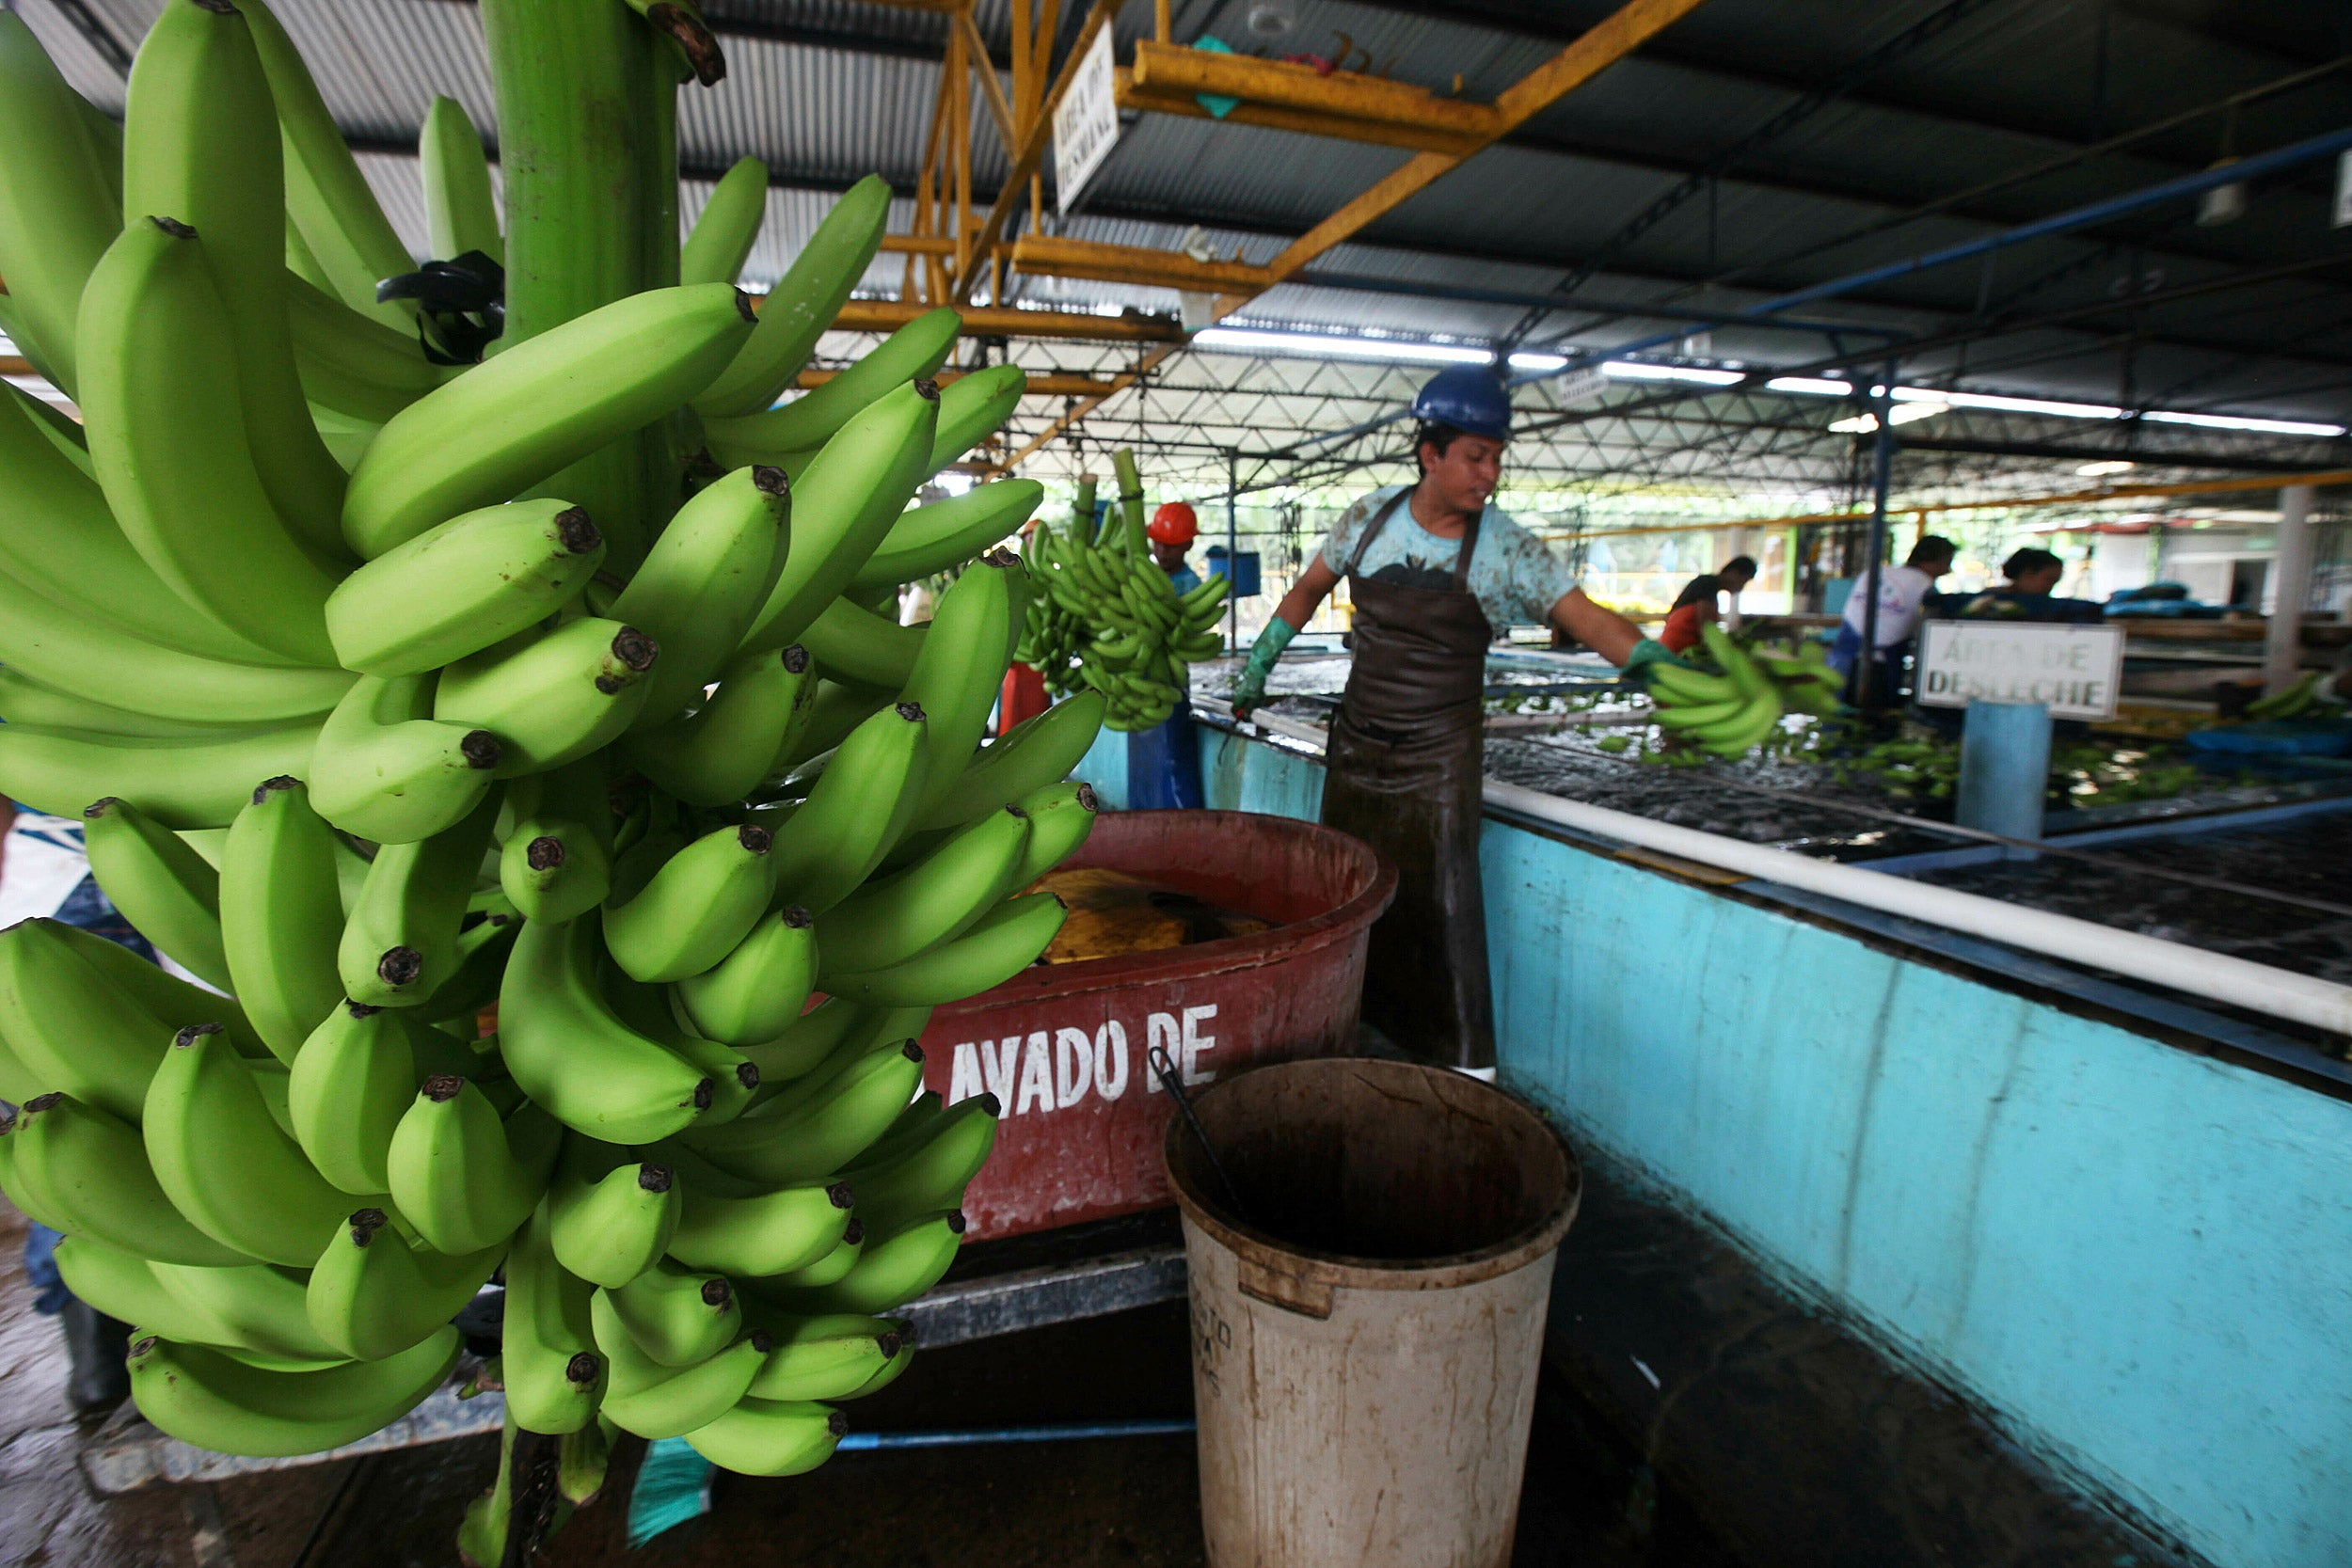 Workers sort freshly harvested bananas to be exported, at a farm in Ciudad Hidalgo, Chiapas state, Mexico.